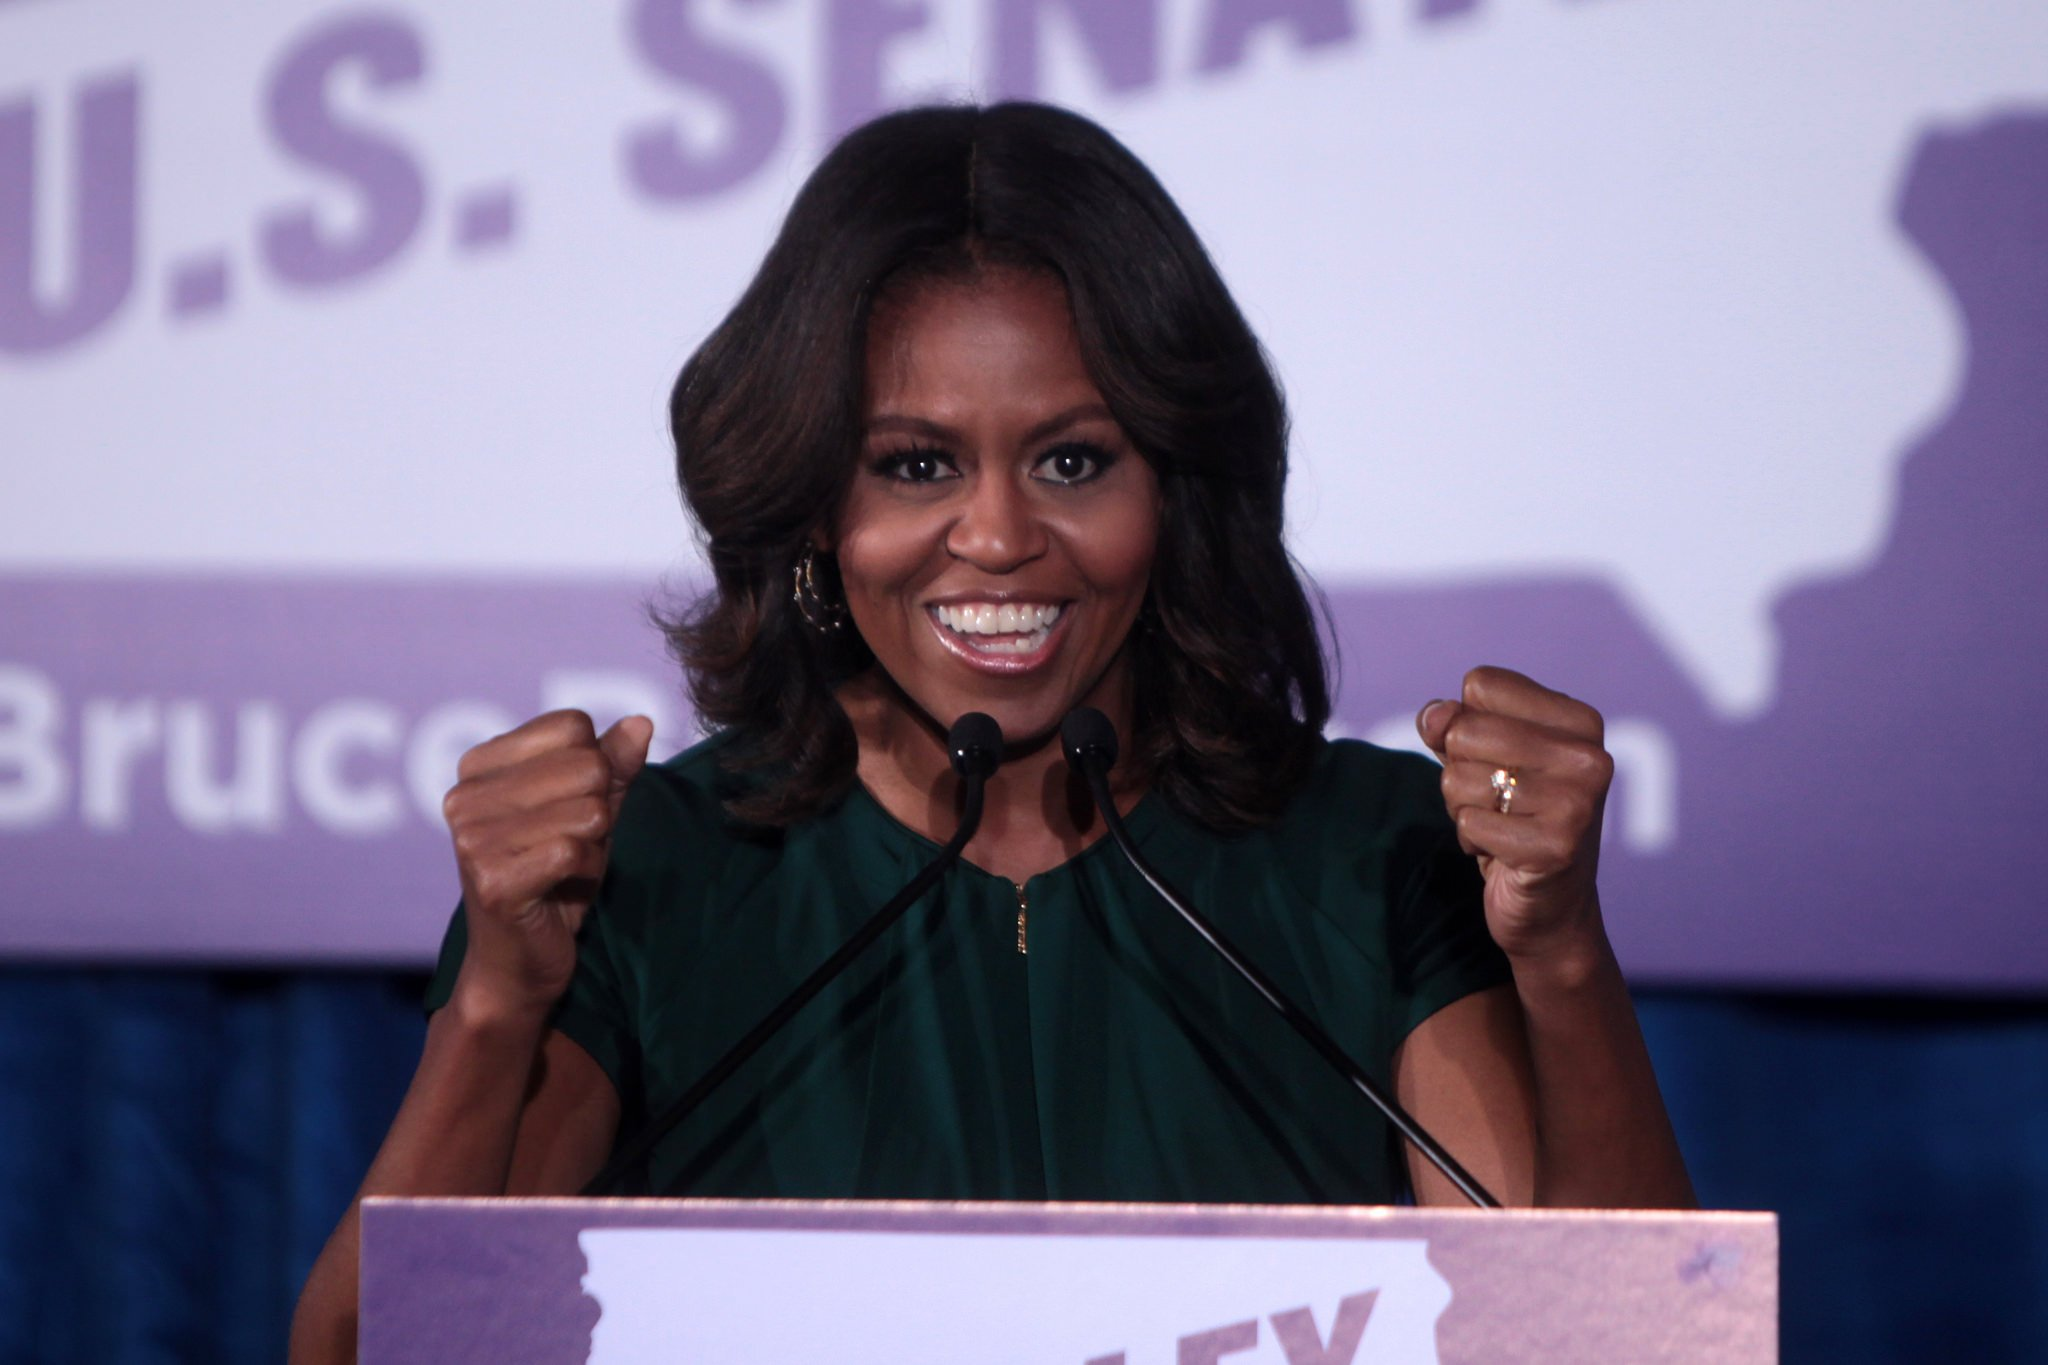 Review: Becoming, by Michelle Obama